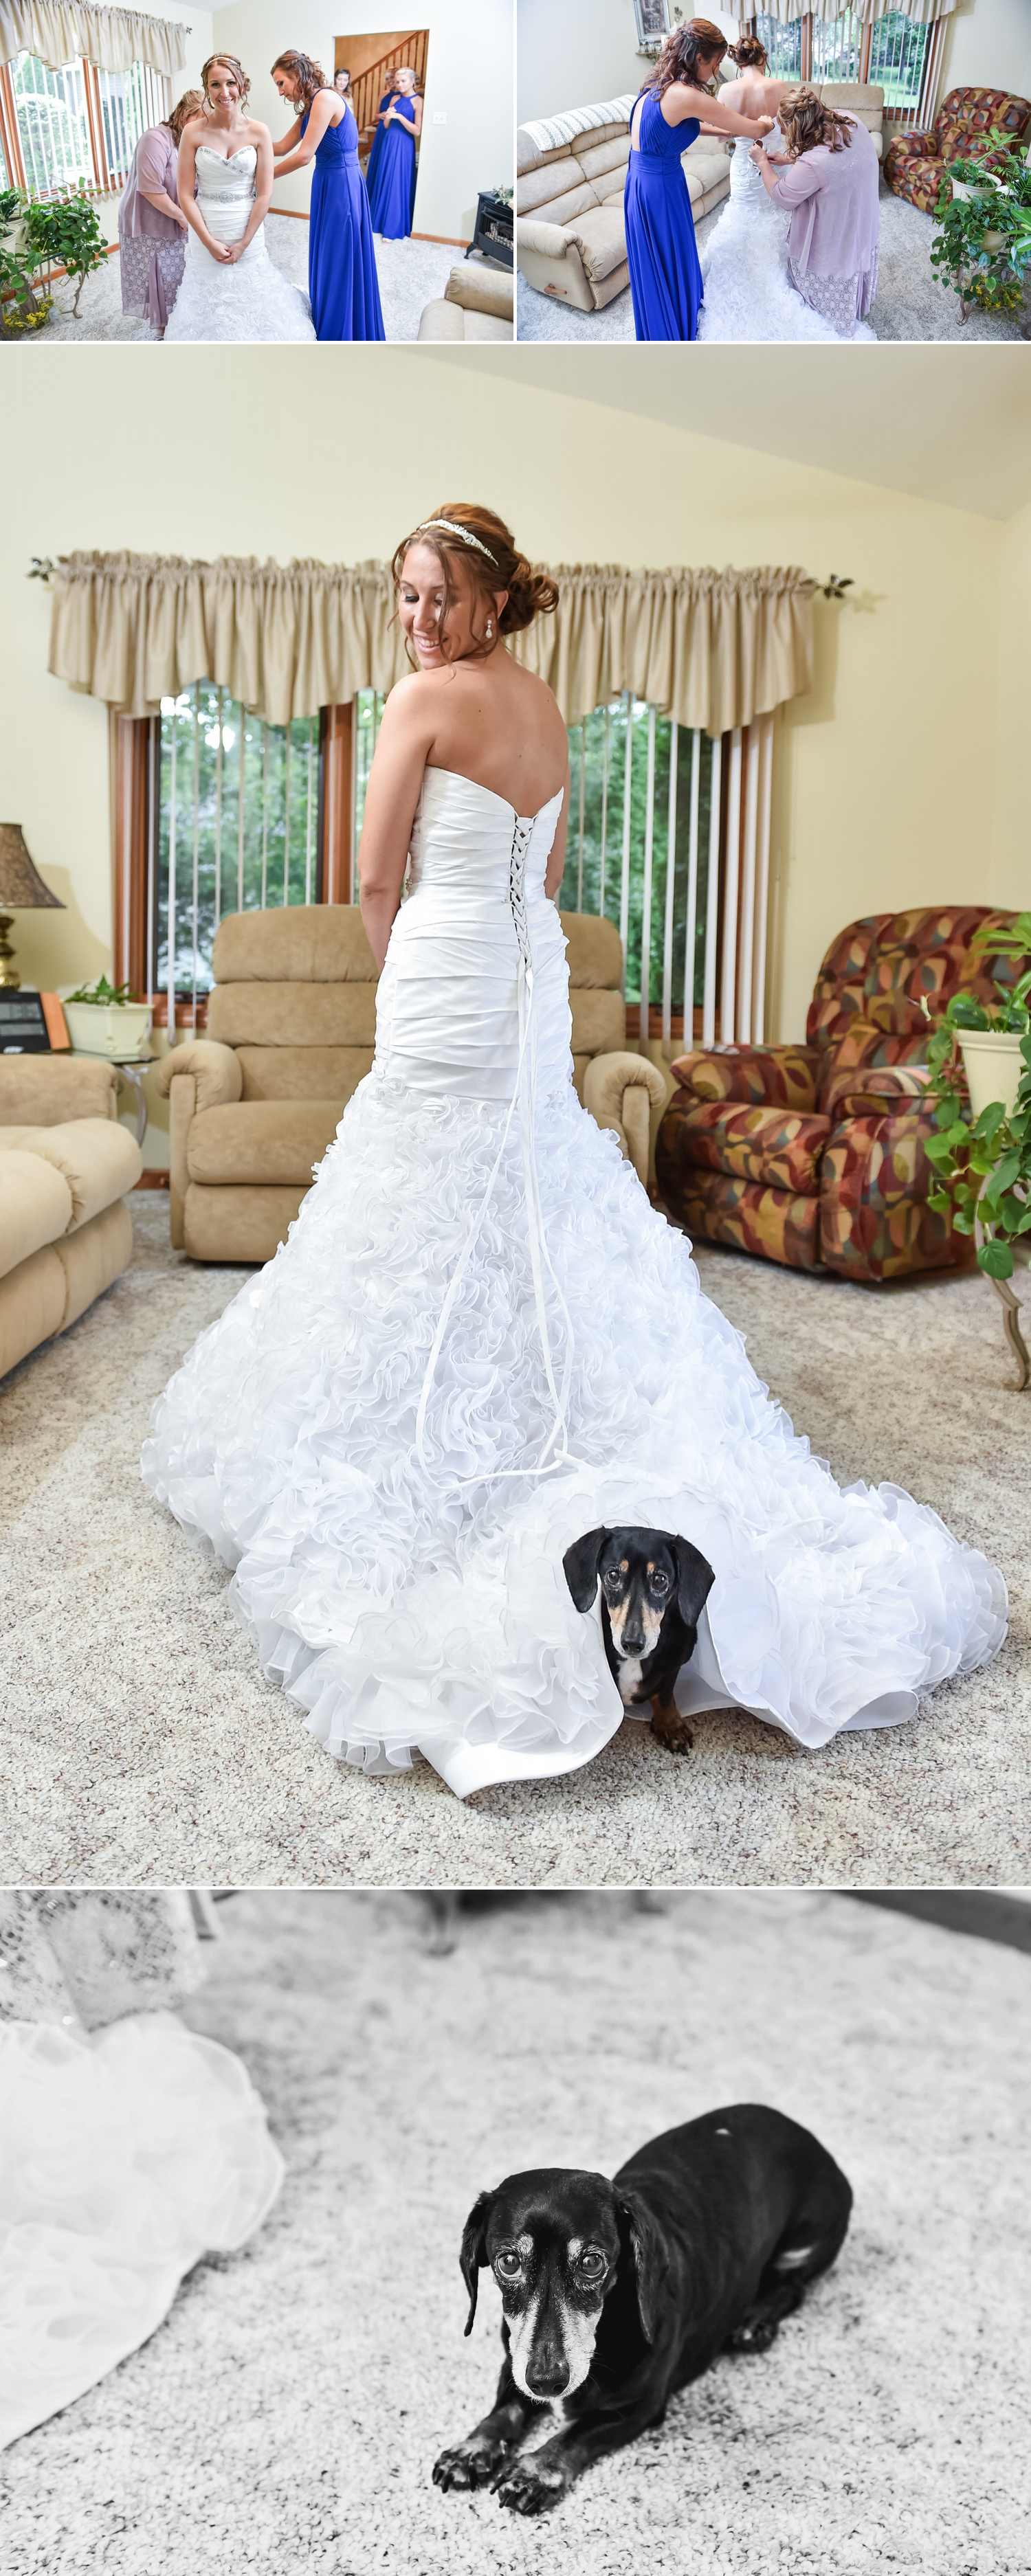 """""""I was unsure at first if it was """"the dress,"""" my mom told me it is totally you! It's fun and its just you, fits your personality!""""  The bridesmaids chose their own gowns from  Something Blue Bridal Boutique  and received  Nadri  earrings as part of their gifts from Brittney."""